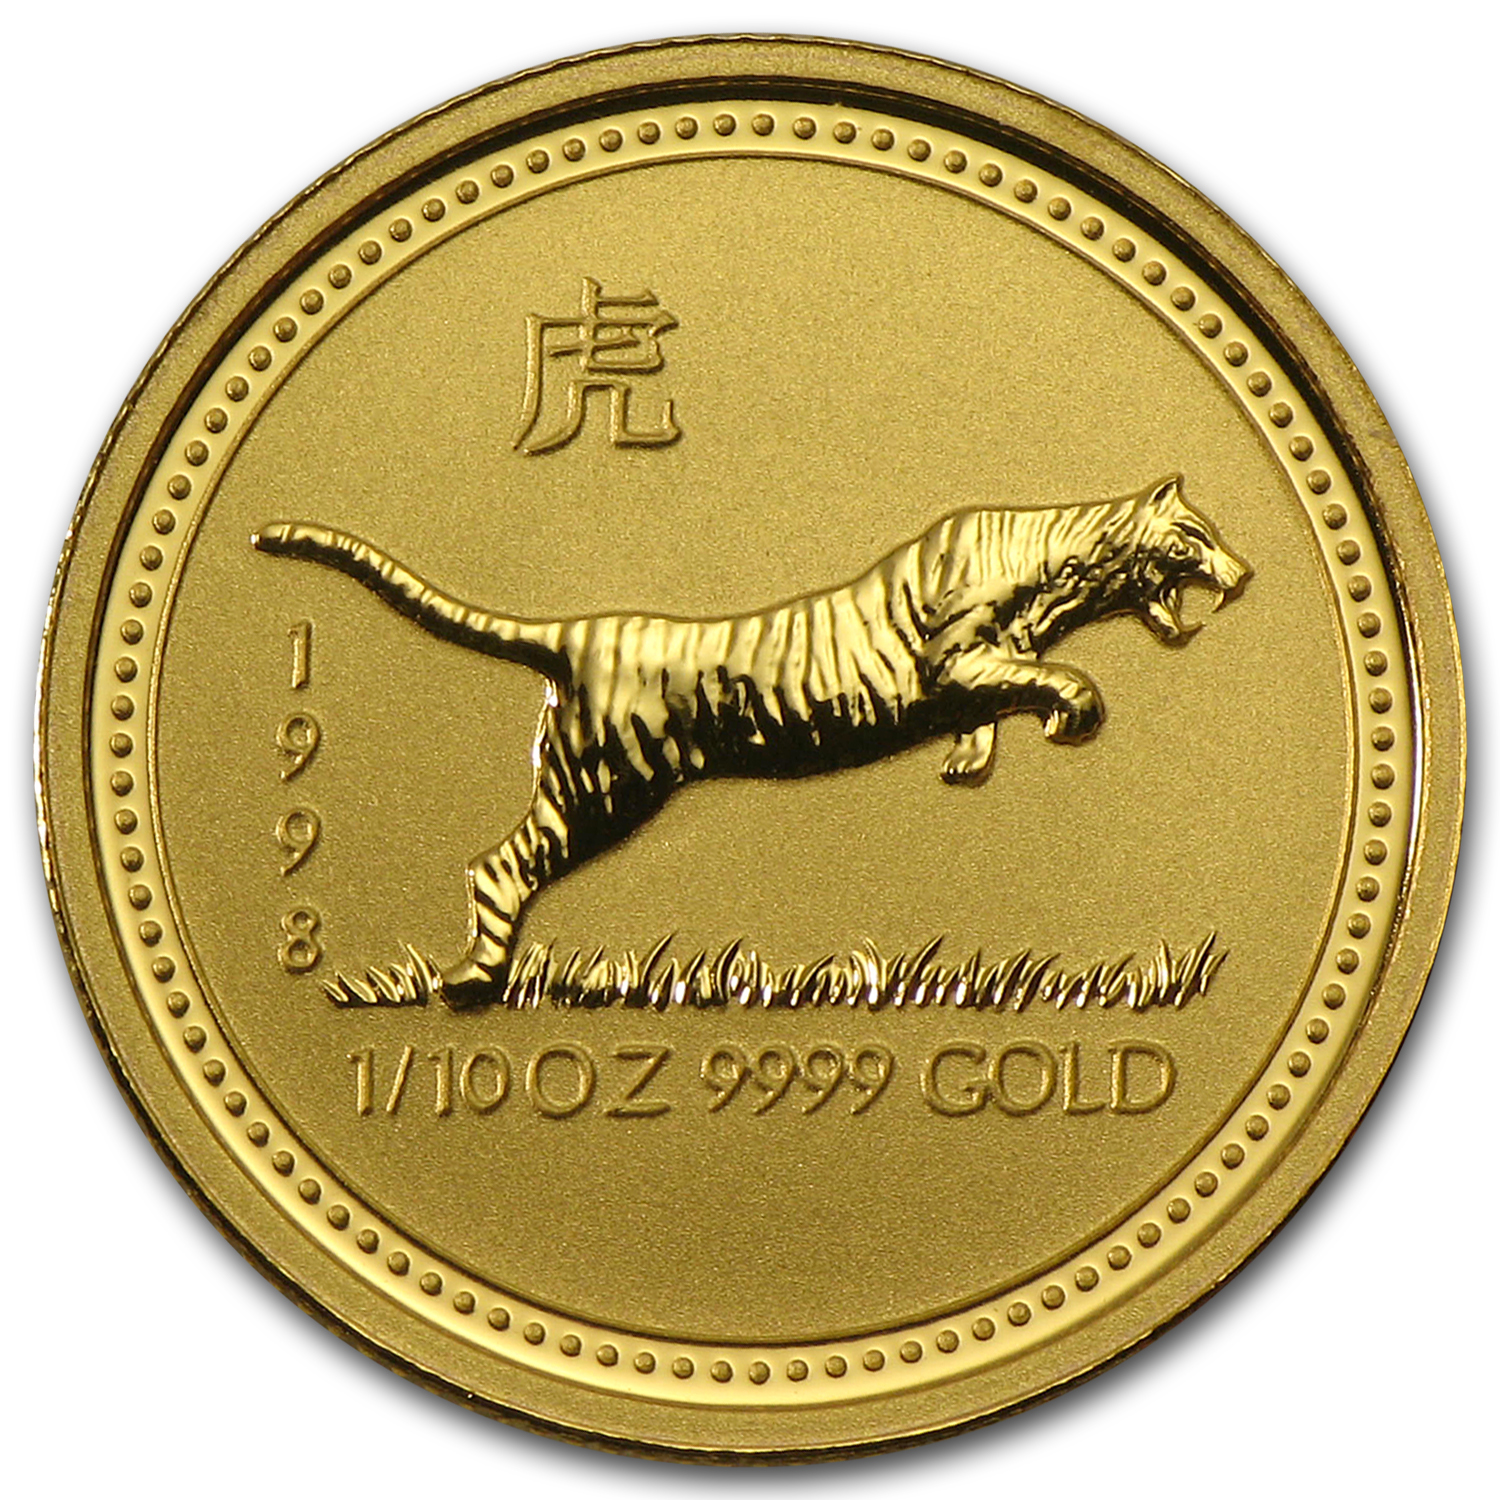 1998 1/10 oz Gold Year of the Tiger Lunar Coin (Series I)